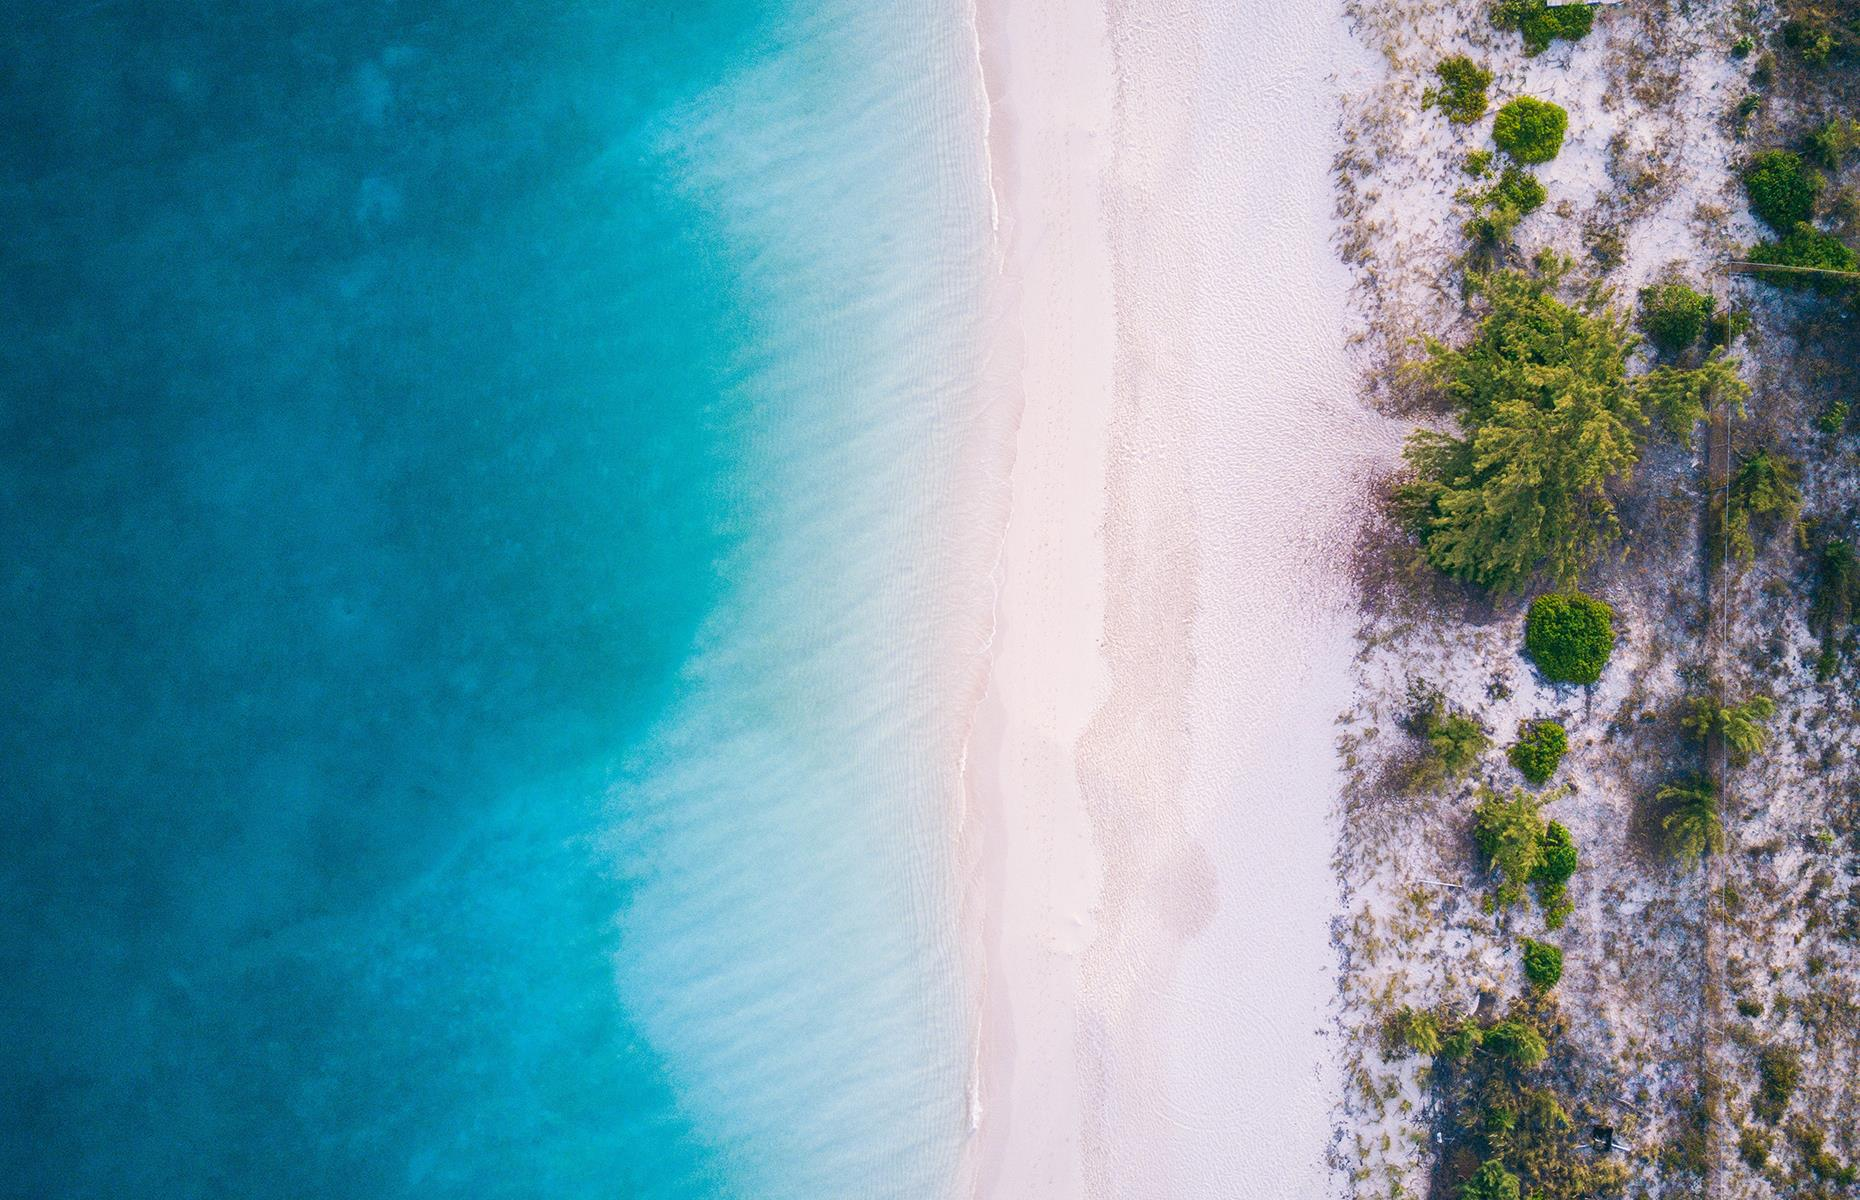 Slide 4 of 43: Calm, blue ocean and soft, white sands characterize Grace Bay on Providenciales (Provo), part of the idyllic Turks and Caicos archipelago. It's pristine and quiet, with colorful cays and marine life flourishing in the waters – the stillness here is captured from above.